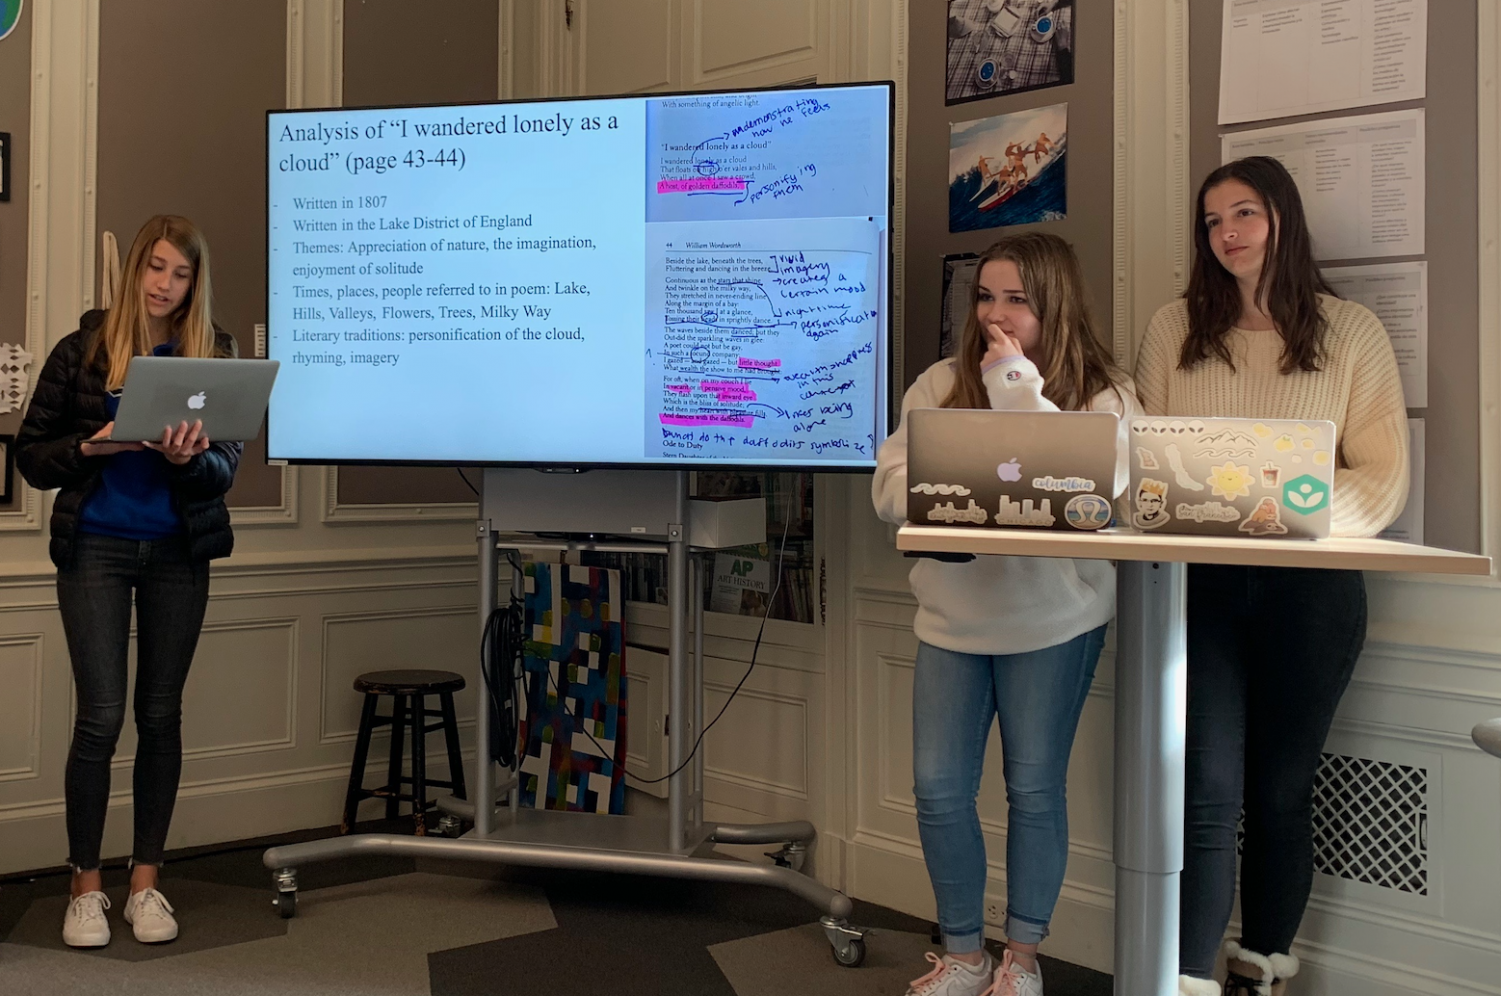 """Sophomores Bridget Mills, Sloane Riley, and Cristina Jackson analyze """"I wandered lonely as a cloud"""" in their presentation of the poet William Wordsworth. The students were also asked to research about the poets life including where they lived and important relationships in their life."""